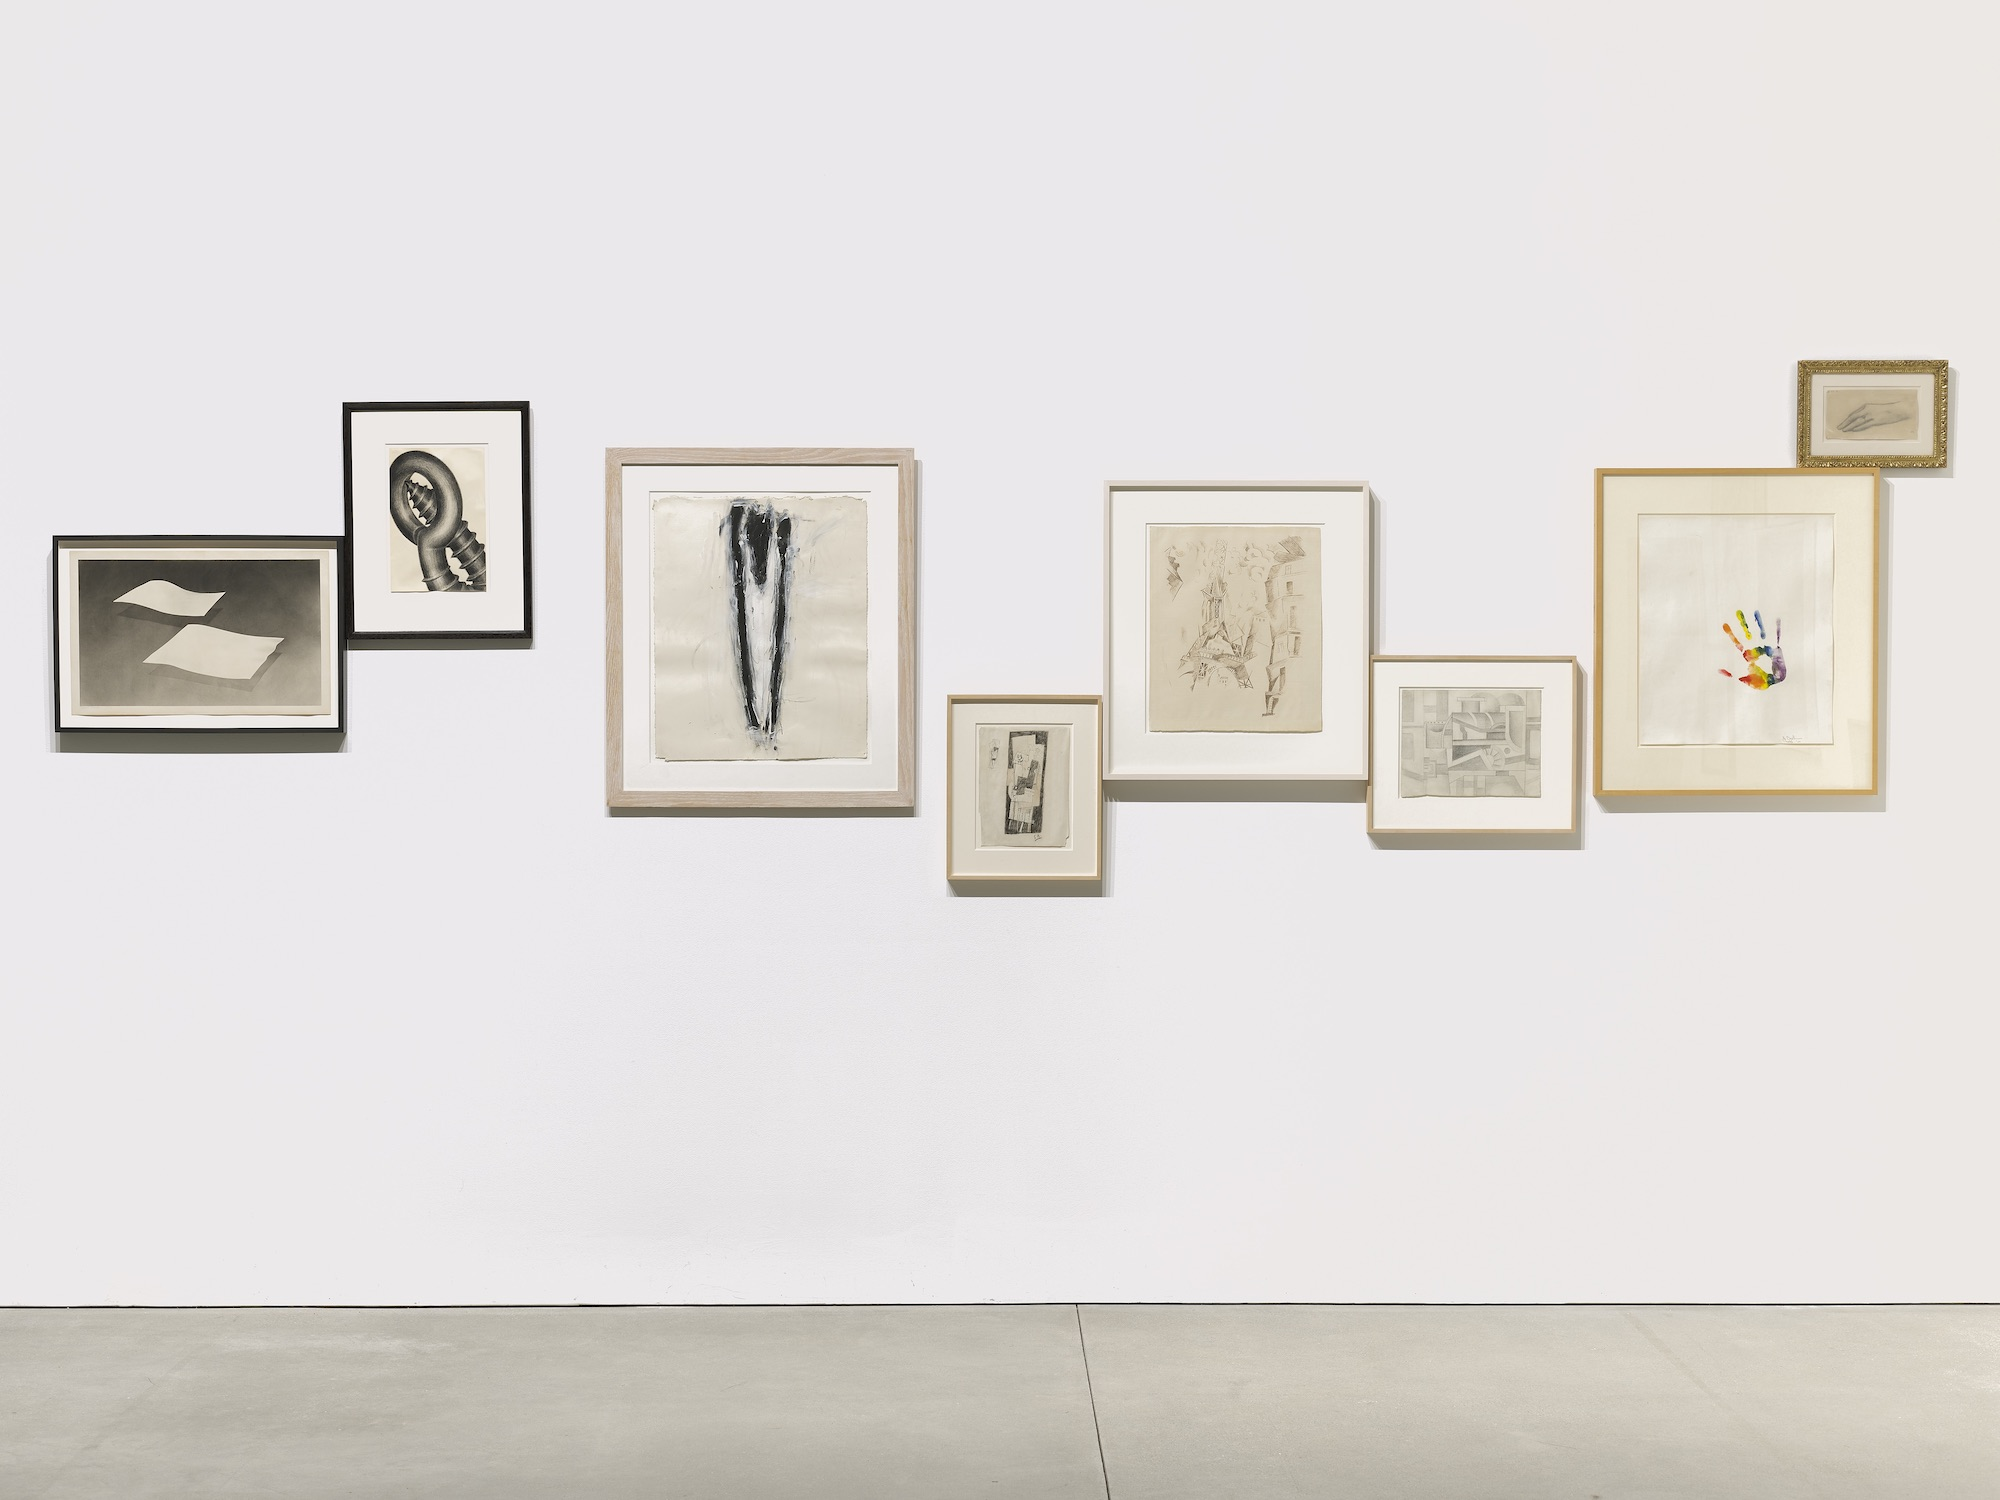 A selection of framed drawings on a wall from the collection of Jack Shear